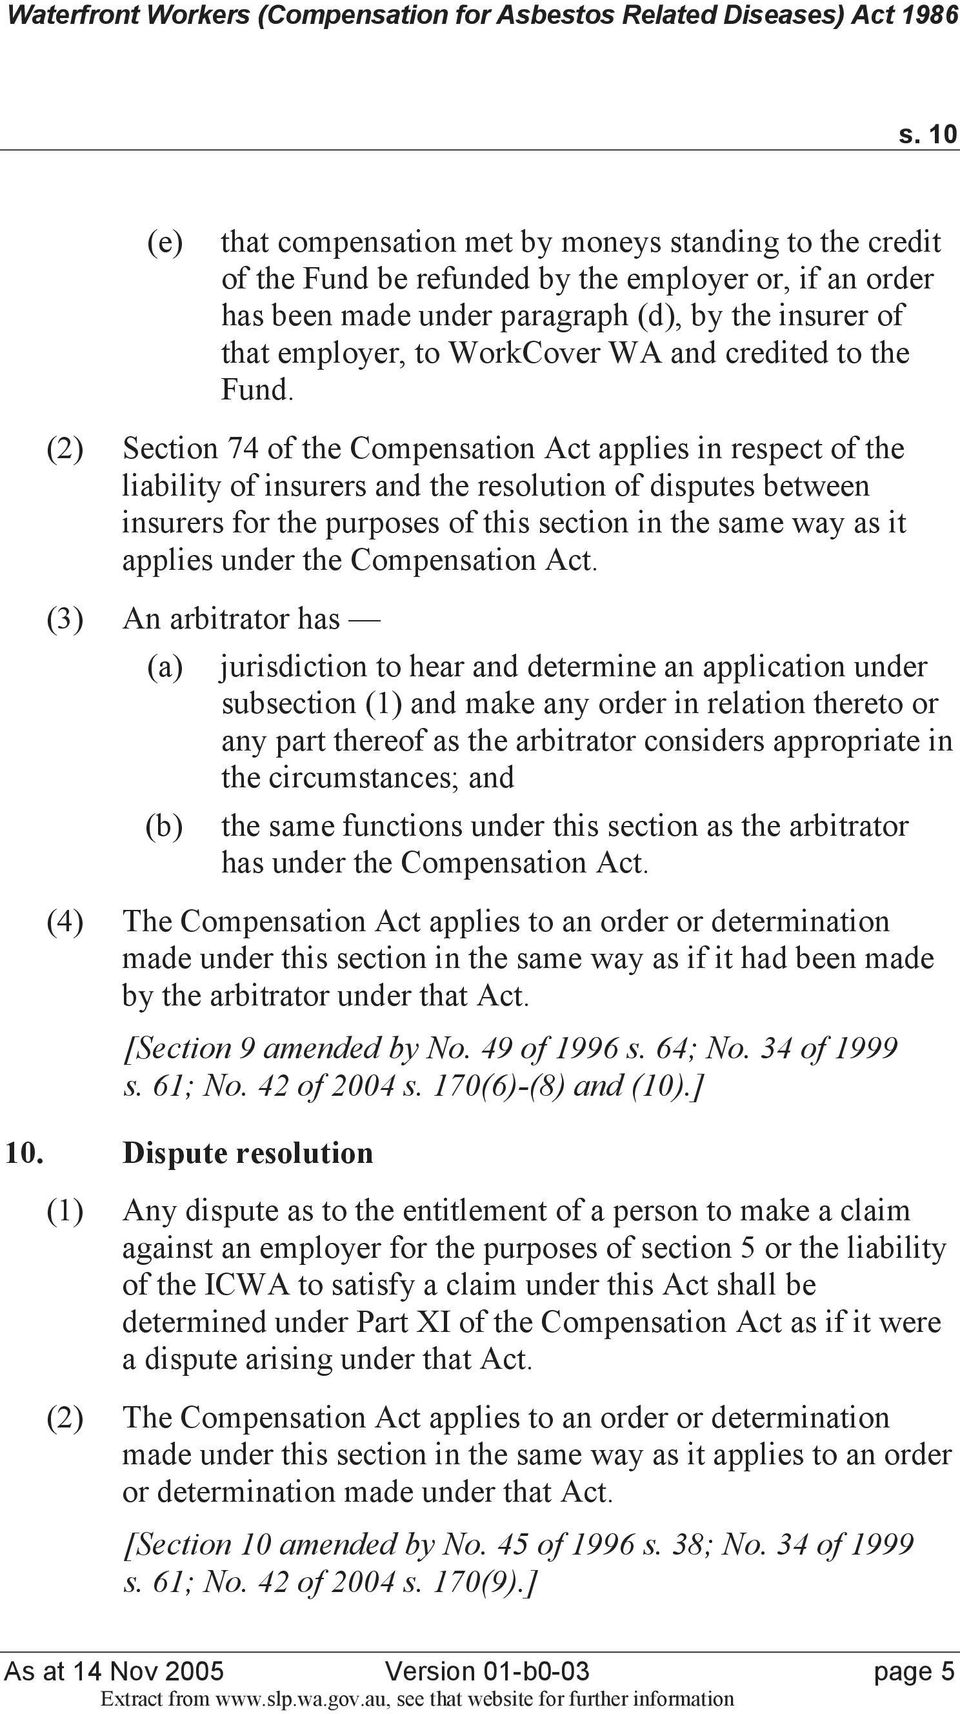 (2) Section 74 of the Compensation Act applies in respect of the liability of insurers and the resolution of disputes between insurers for the purposes of this section in the same way as it applies